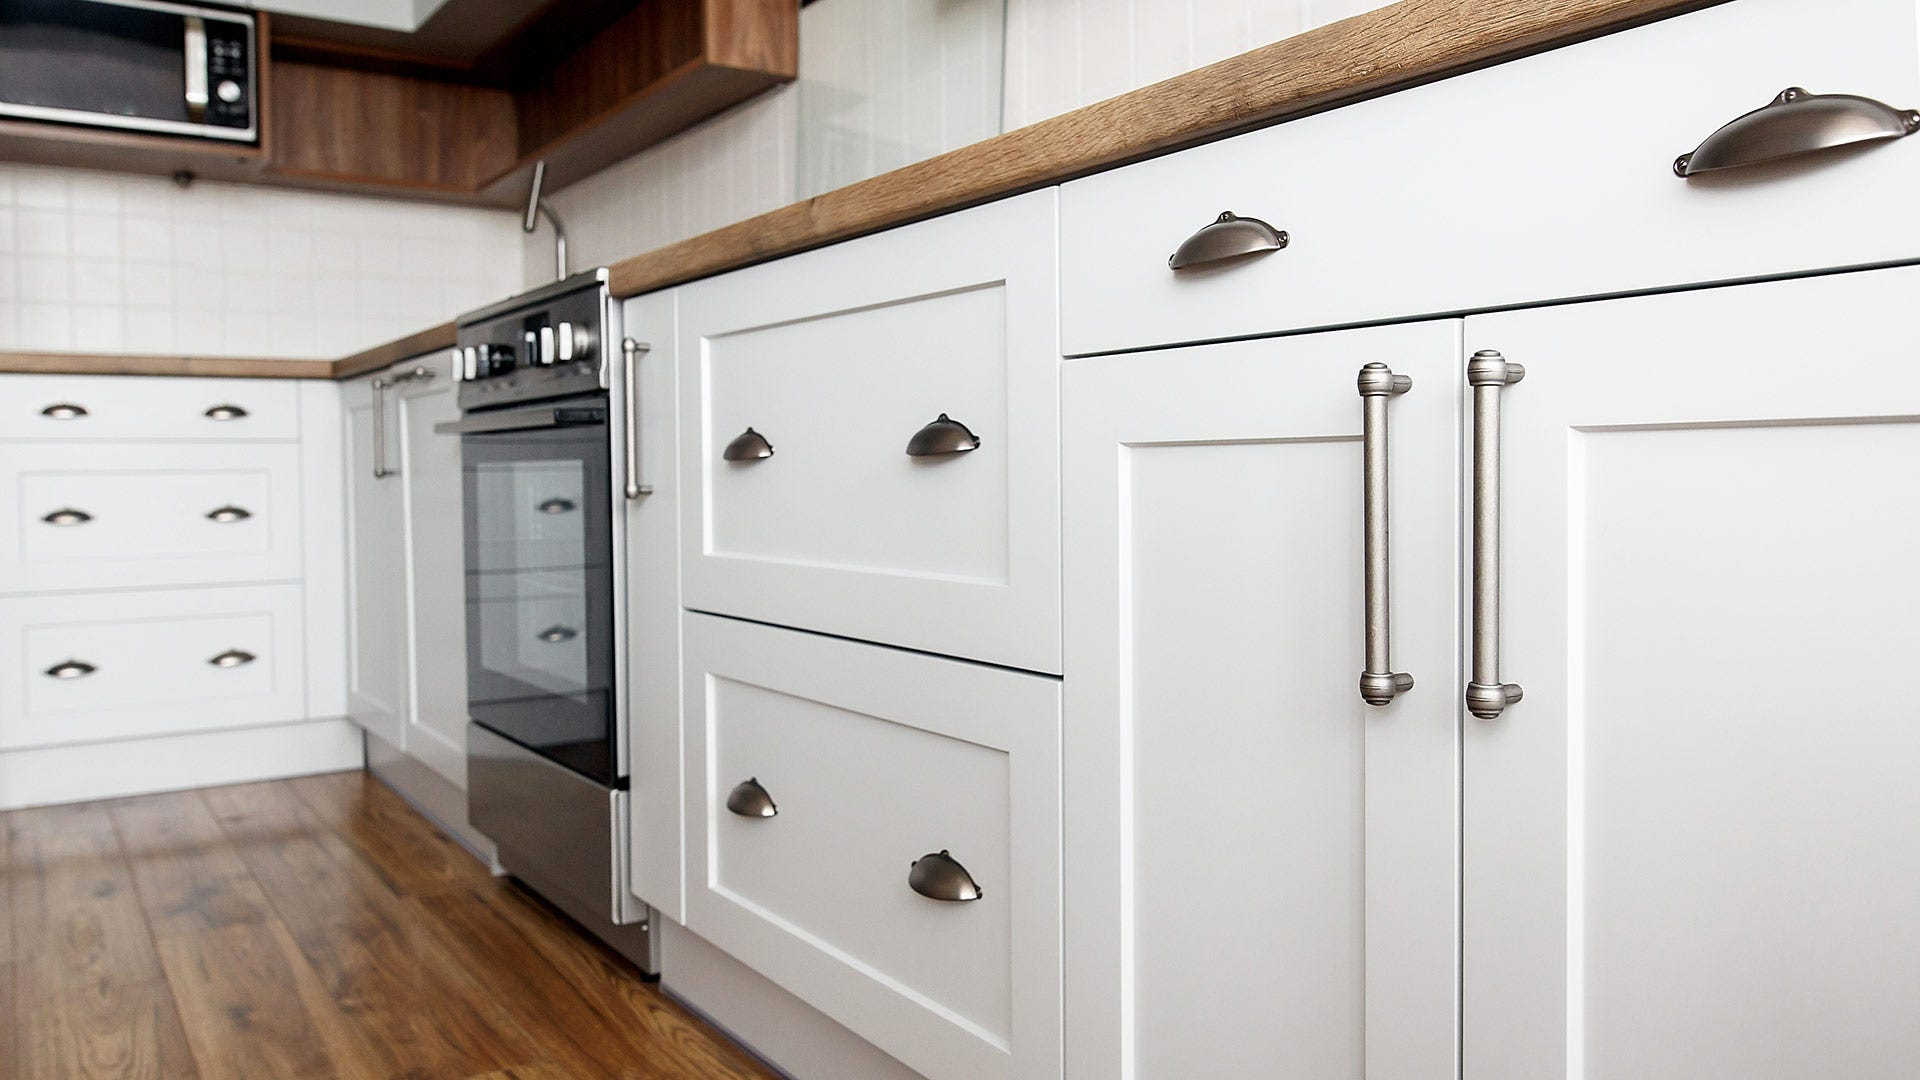 White kitchen cabinets in a kitchen with oak counters and a white tile backsplash.